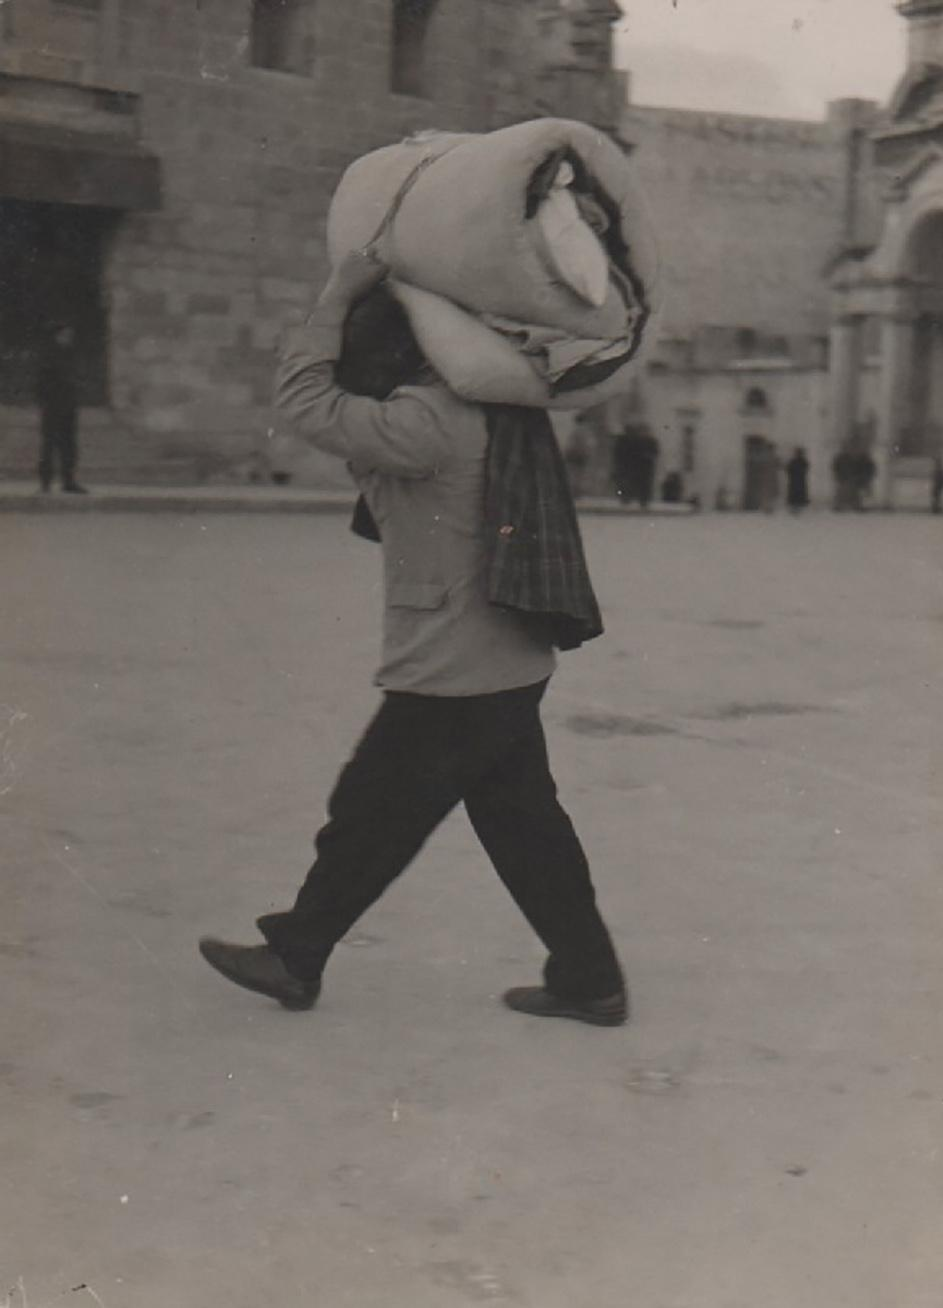 A refugee carrying his bedding as he leaves Valletta.